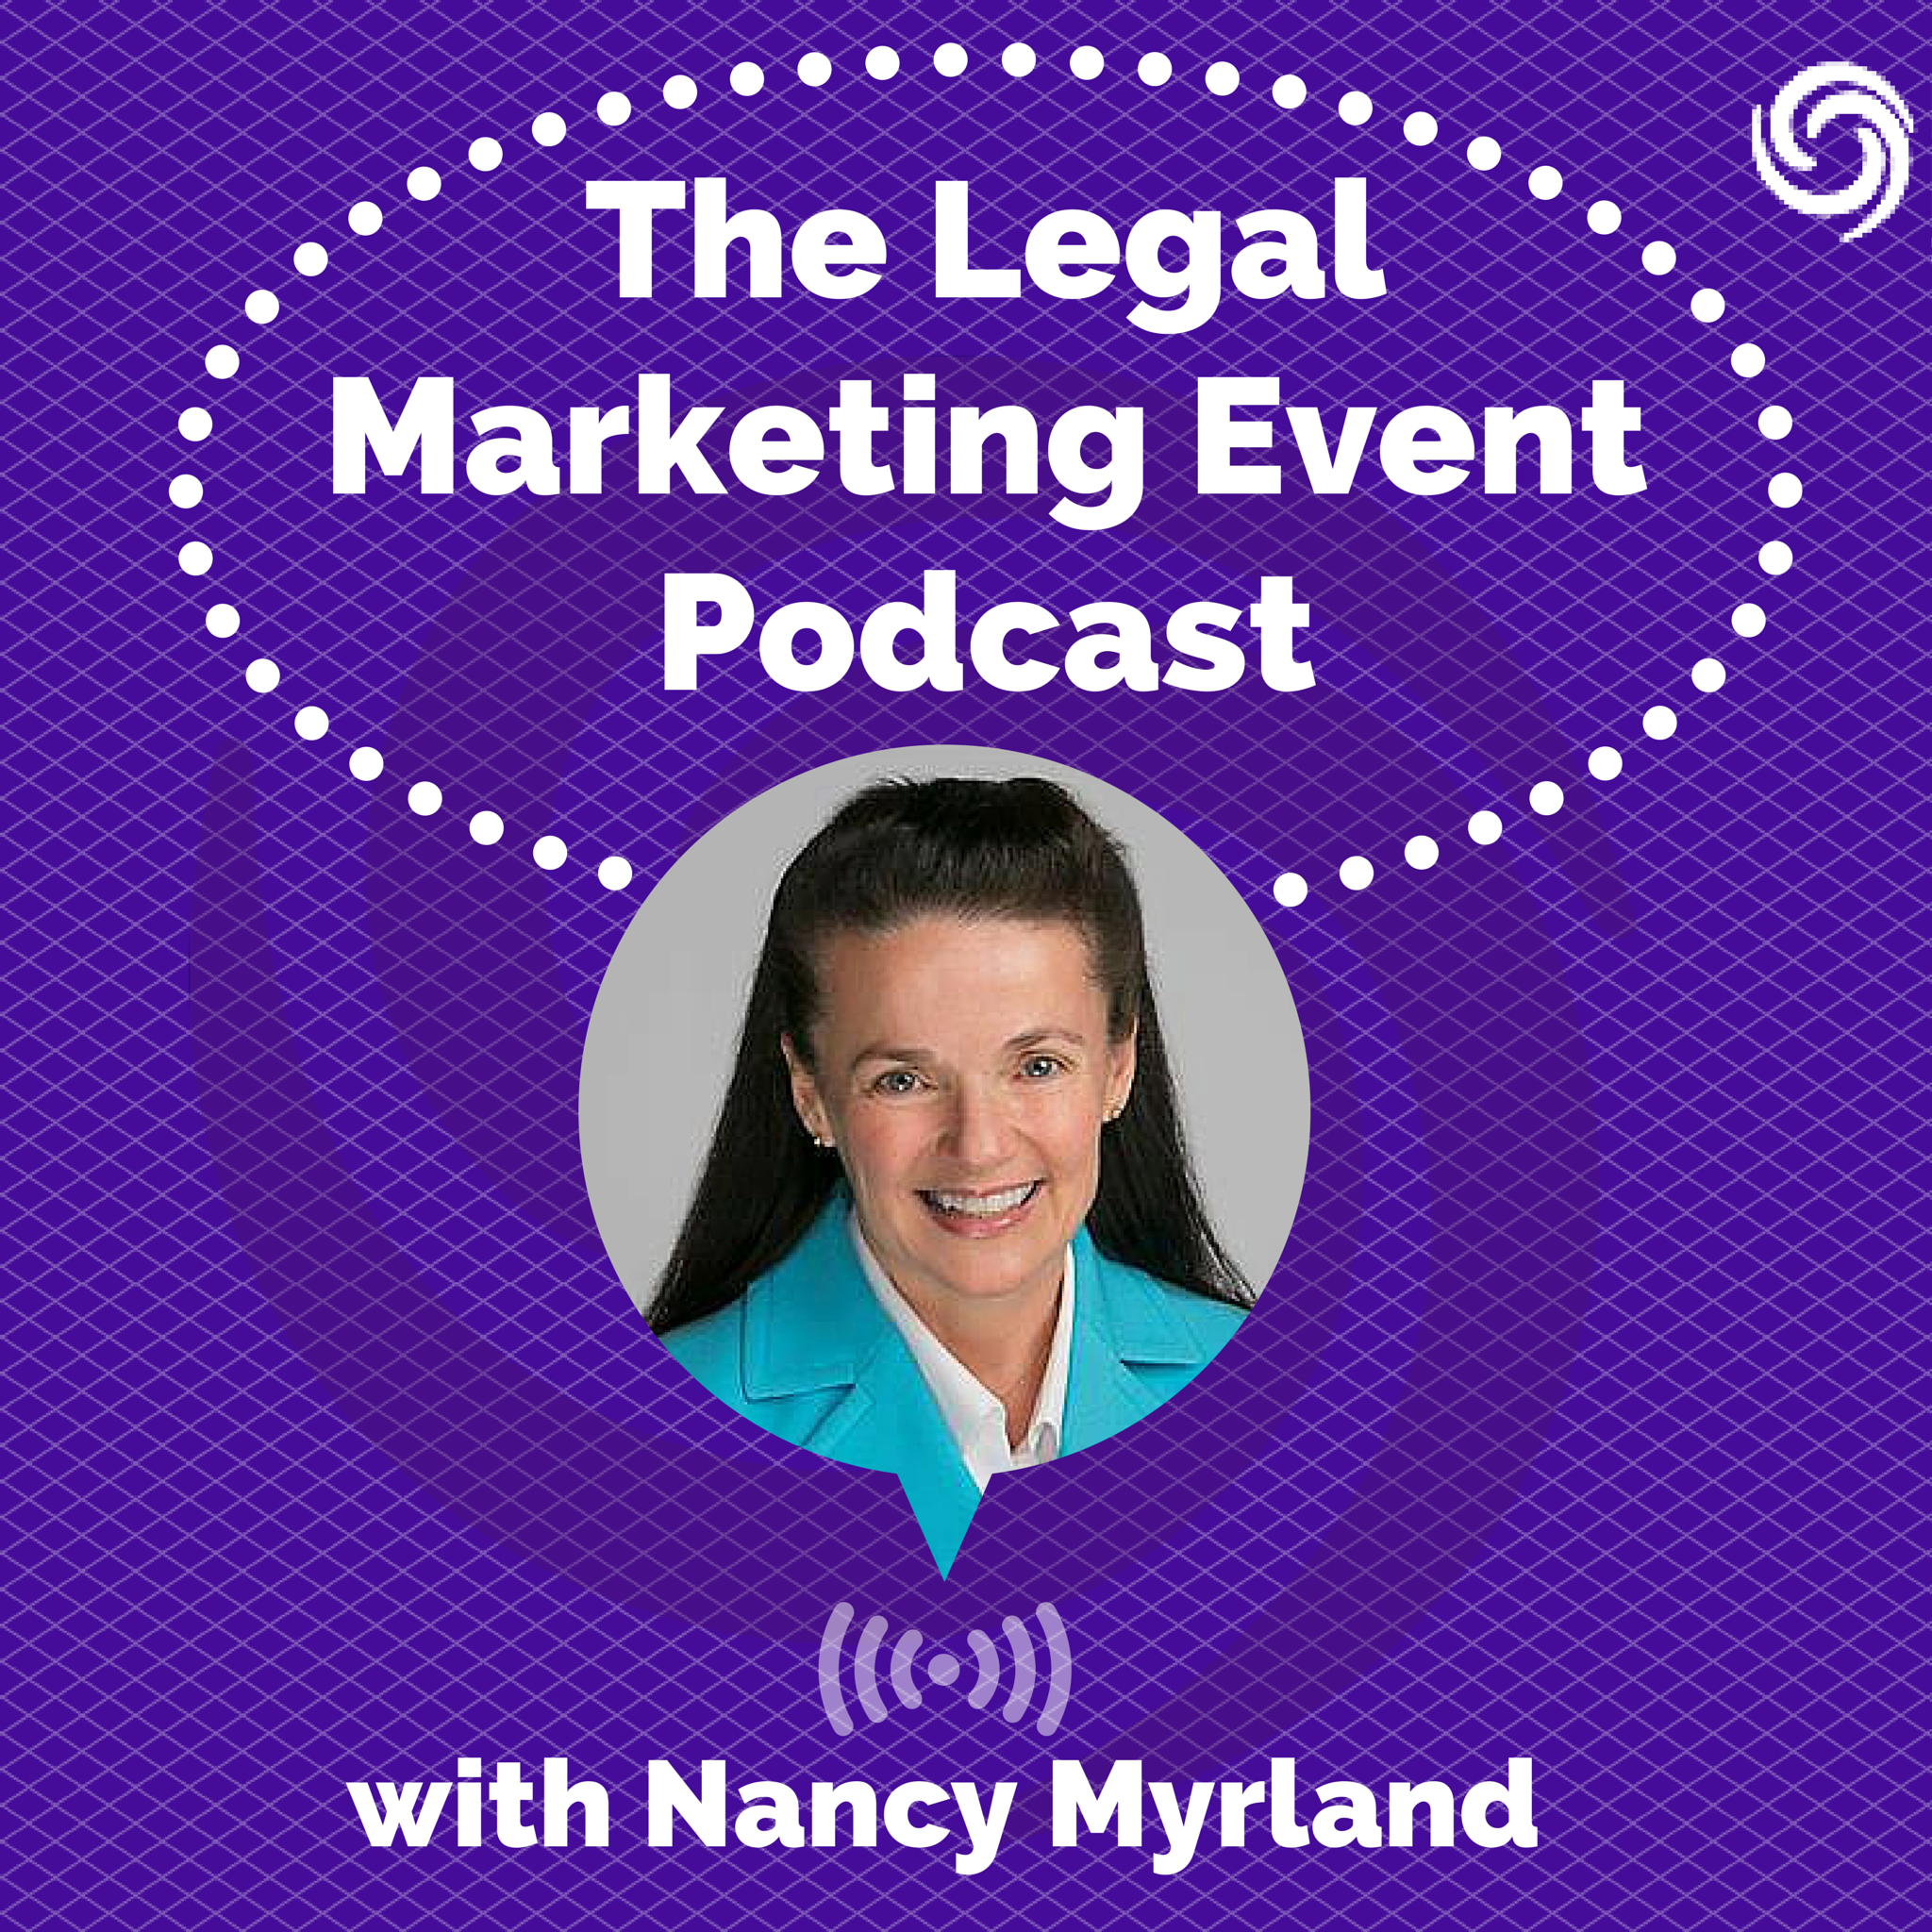 The Legal Marketing Event Podcast1